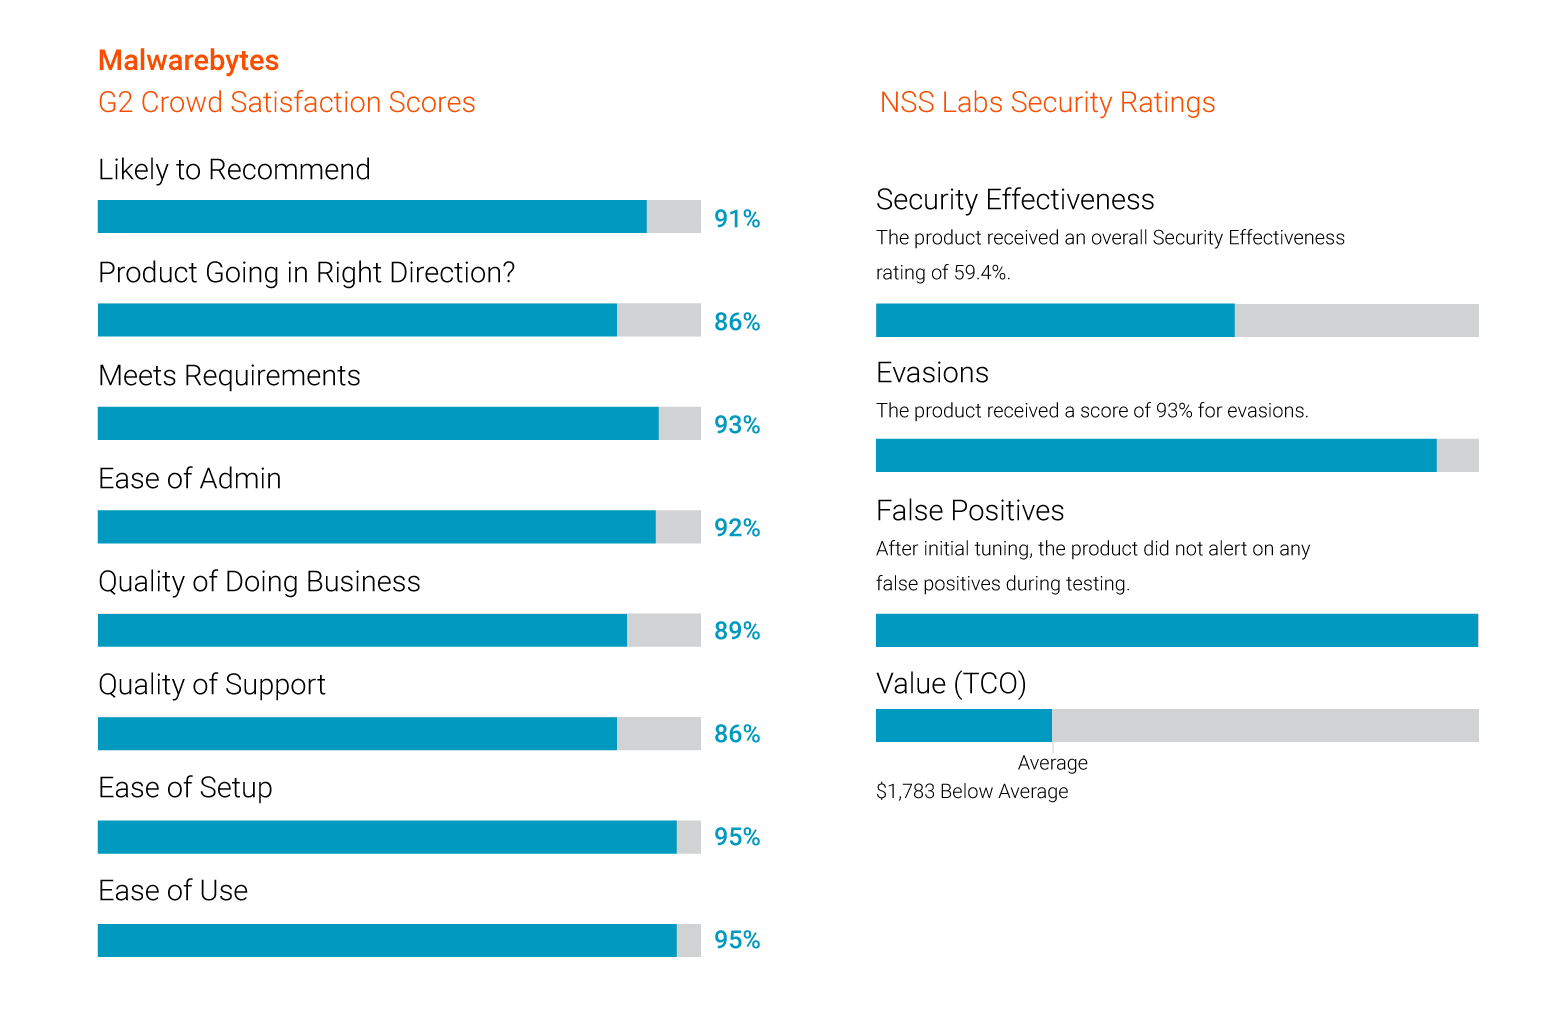 Overall-combined-G2-NSS-rec-or-score---Badging--Product-description-overview-(Supplement-what-pulls-automatically-in-the-RB-with-NSS-info)-Sat-Market-Features-Security-Effectiveness-TCO-ssmock